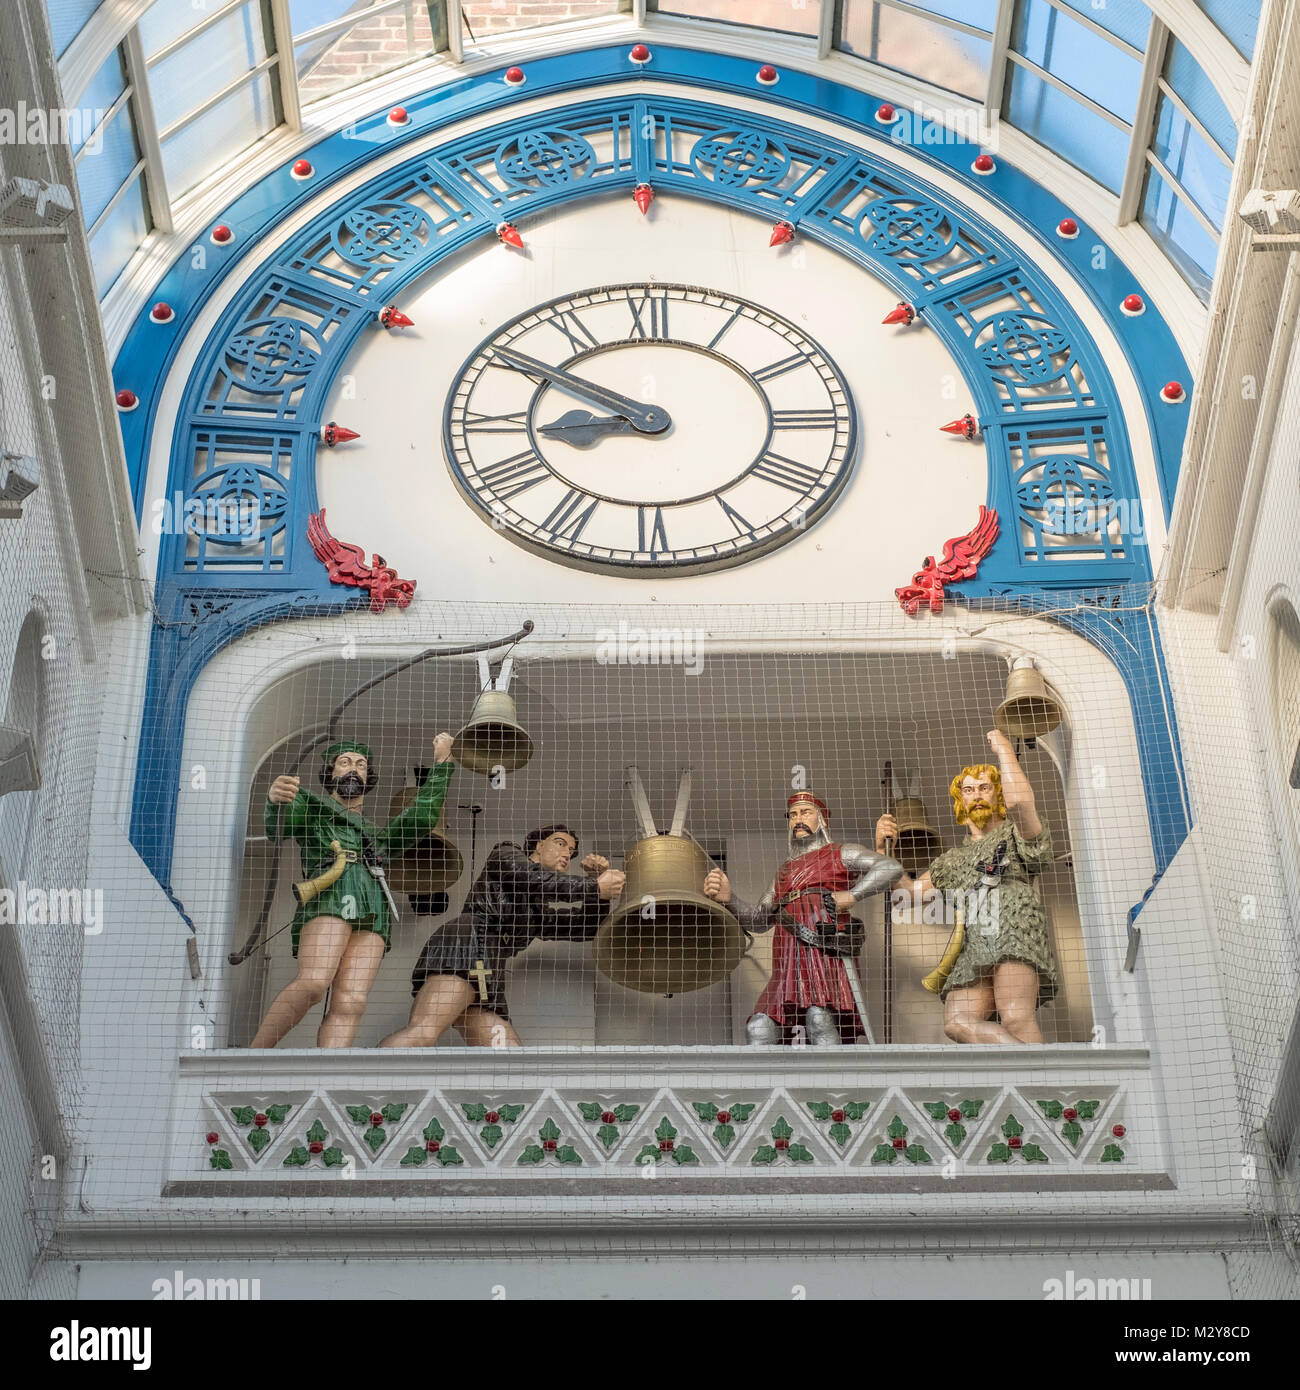 Clock and Chiming bells in Thorntons Arcade, Leeds. - Stock Image